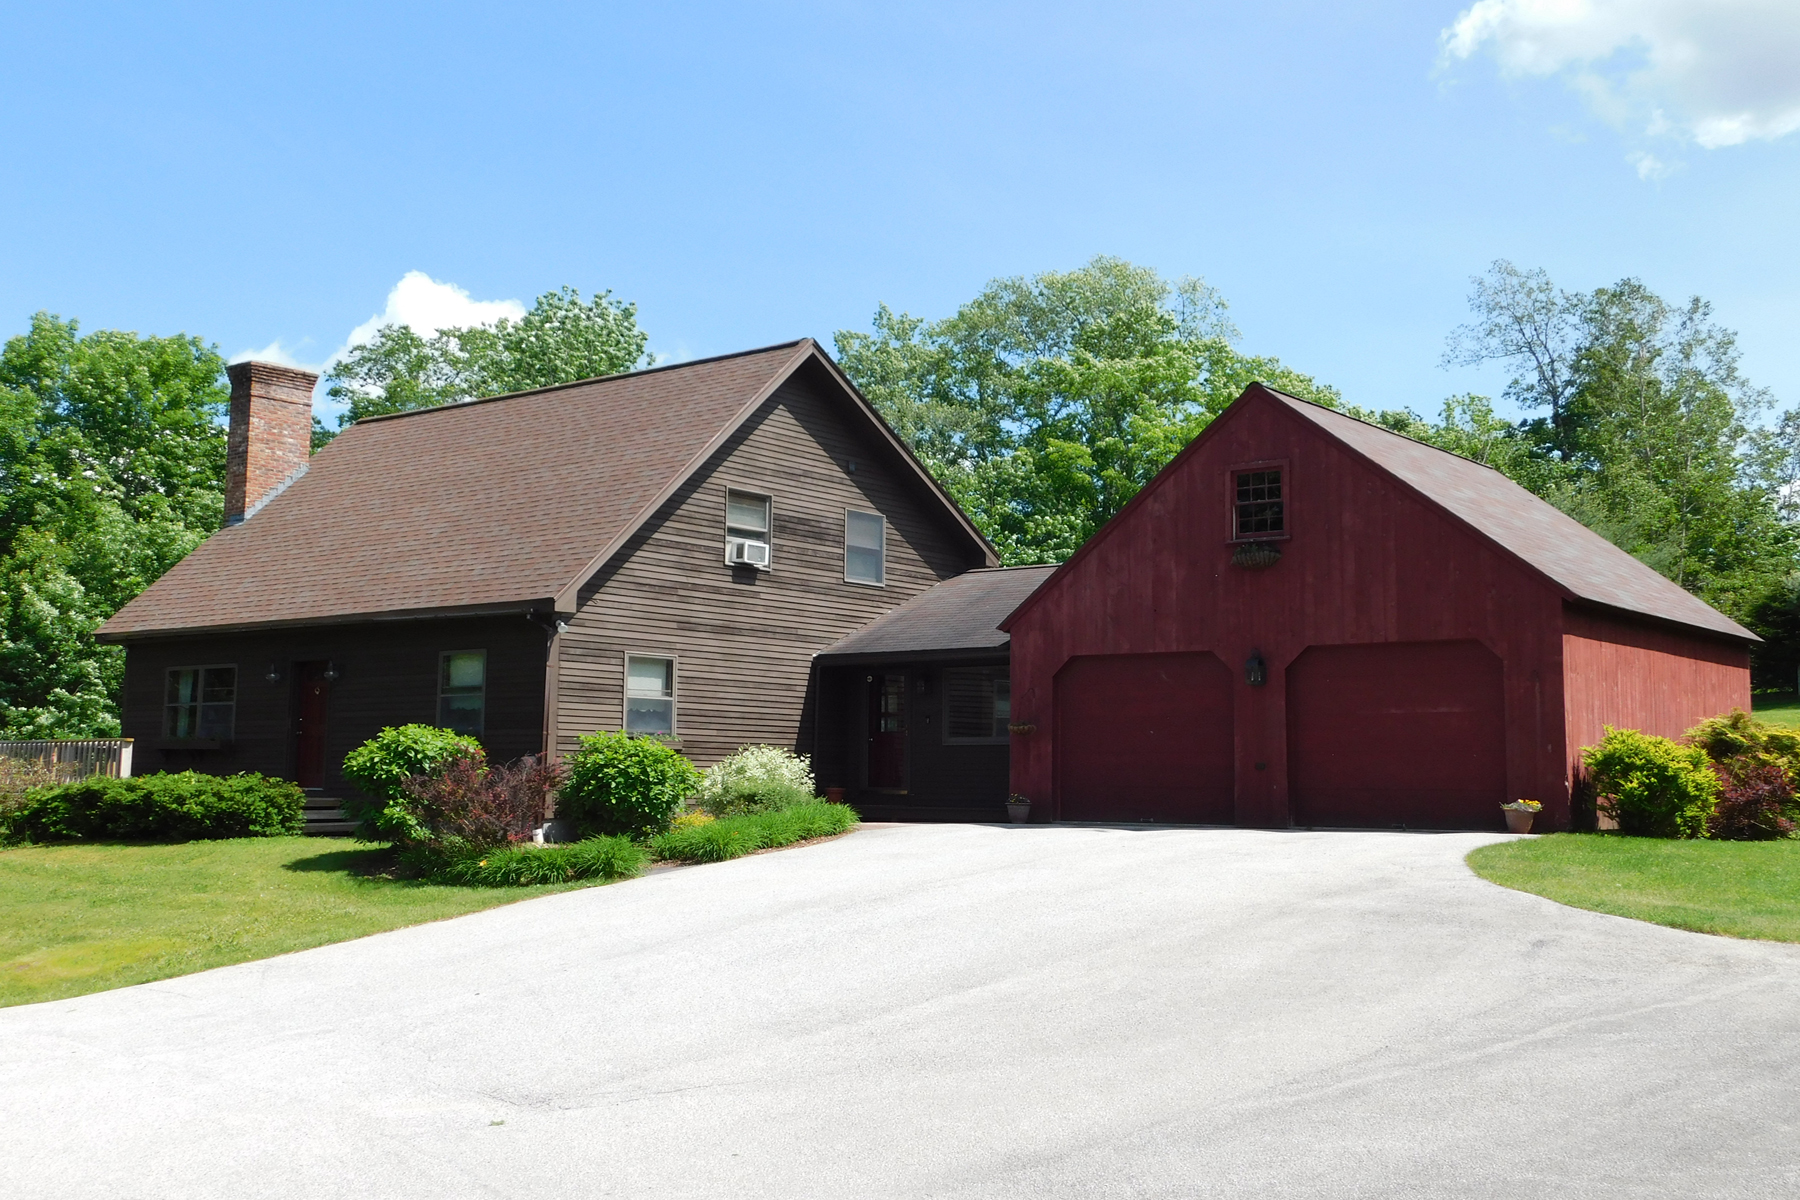 Single Family Homes for Sale at 1843 Vt Route 155, Mount Holly 1843 Vt Route 155 Mount Holly, Vermont 05758 United States